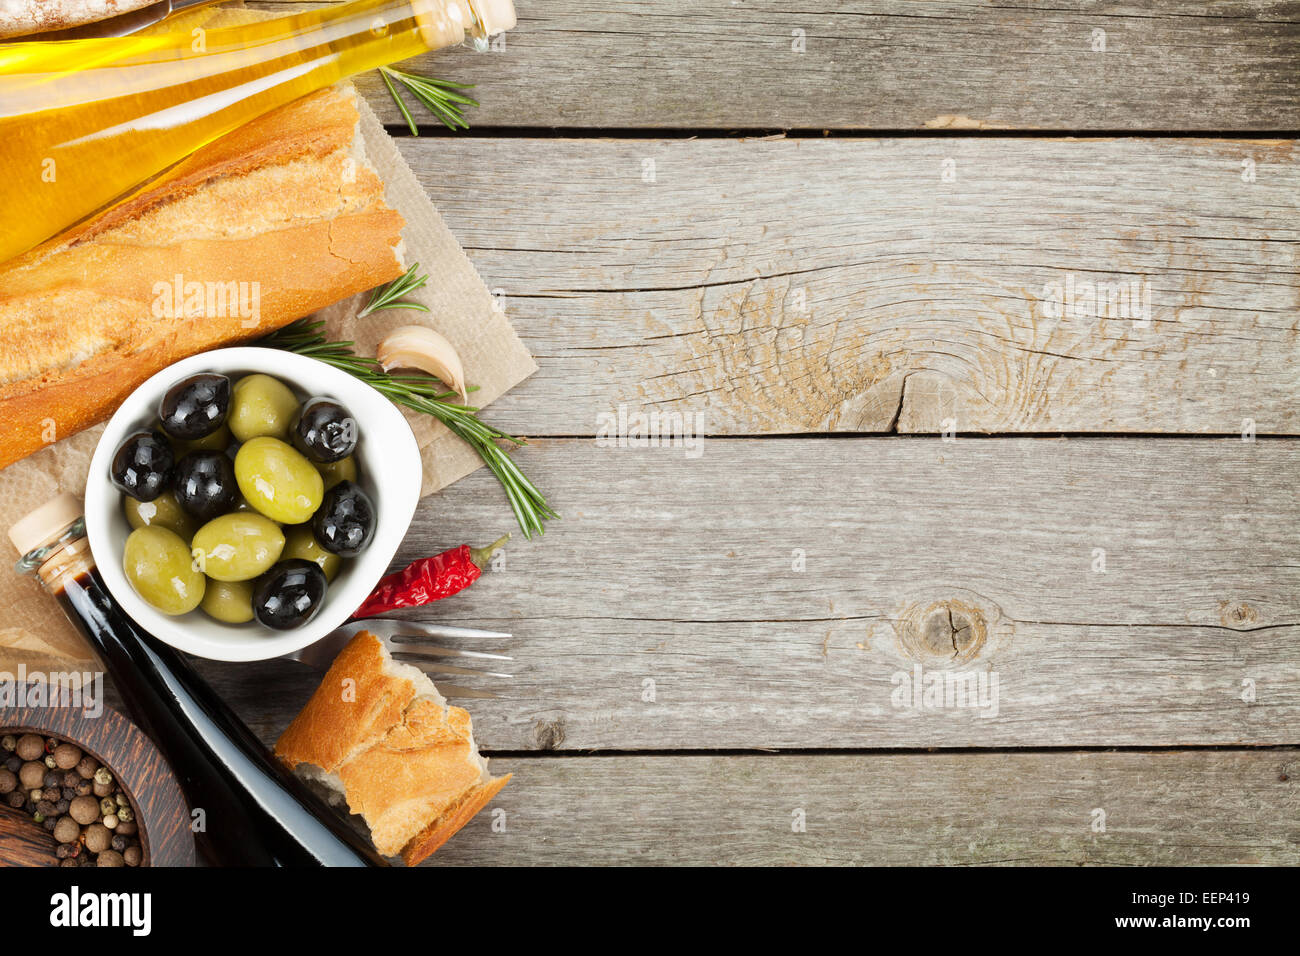 Wooden Food Table ~ Italian food appetizer of olives bread and spices on